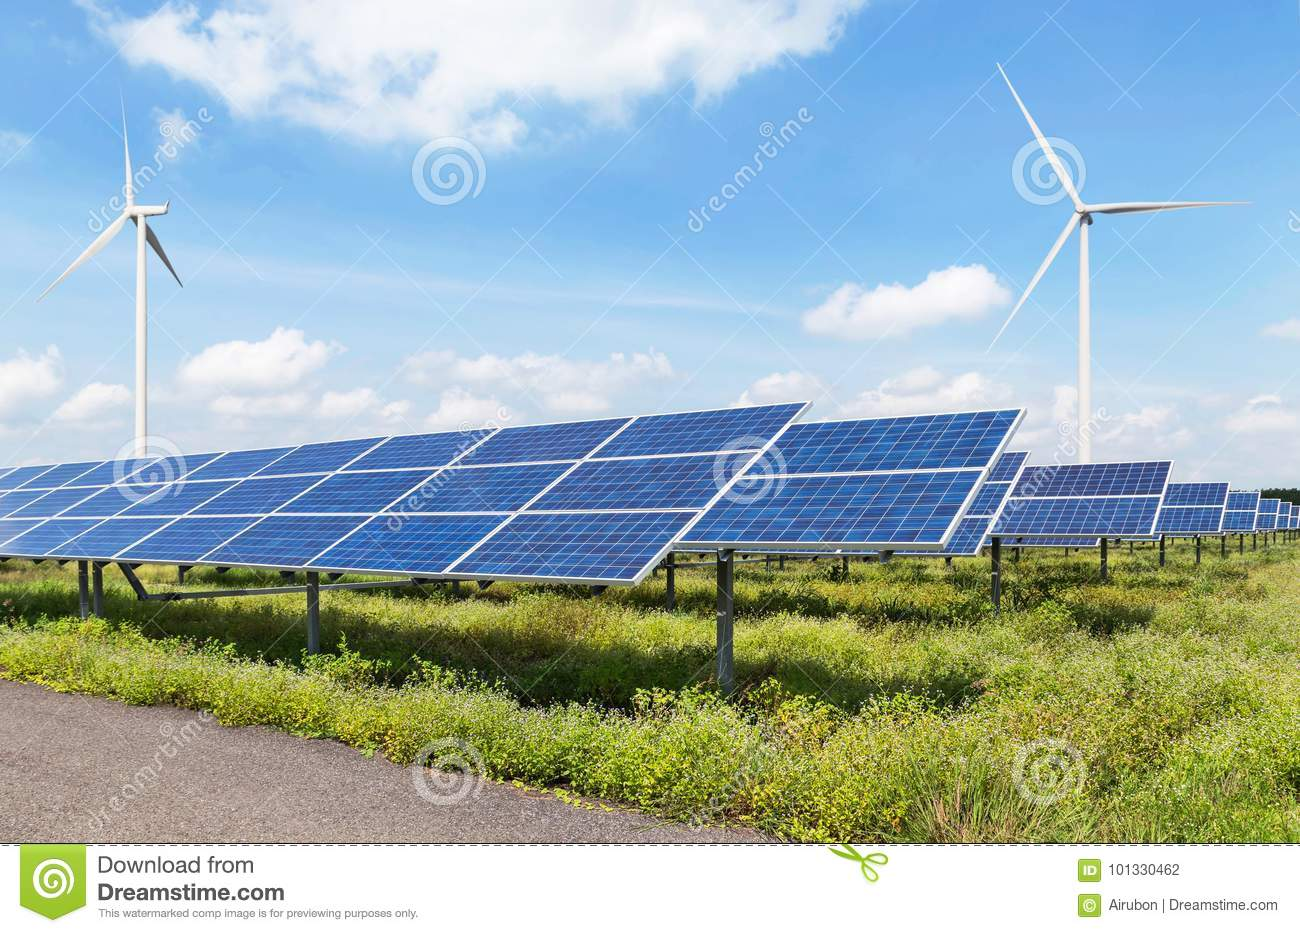 Solar panels and wind turbines in power station green energy renewable with blue sky background